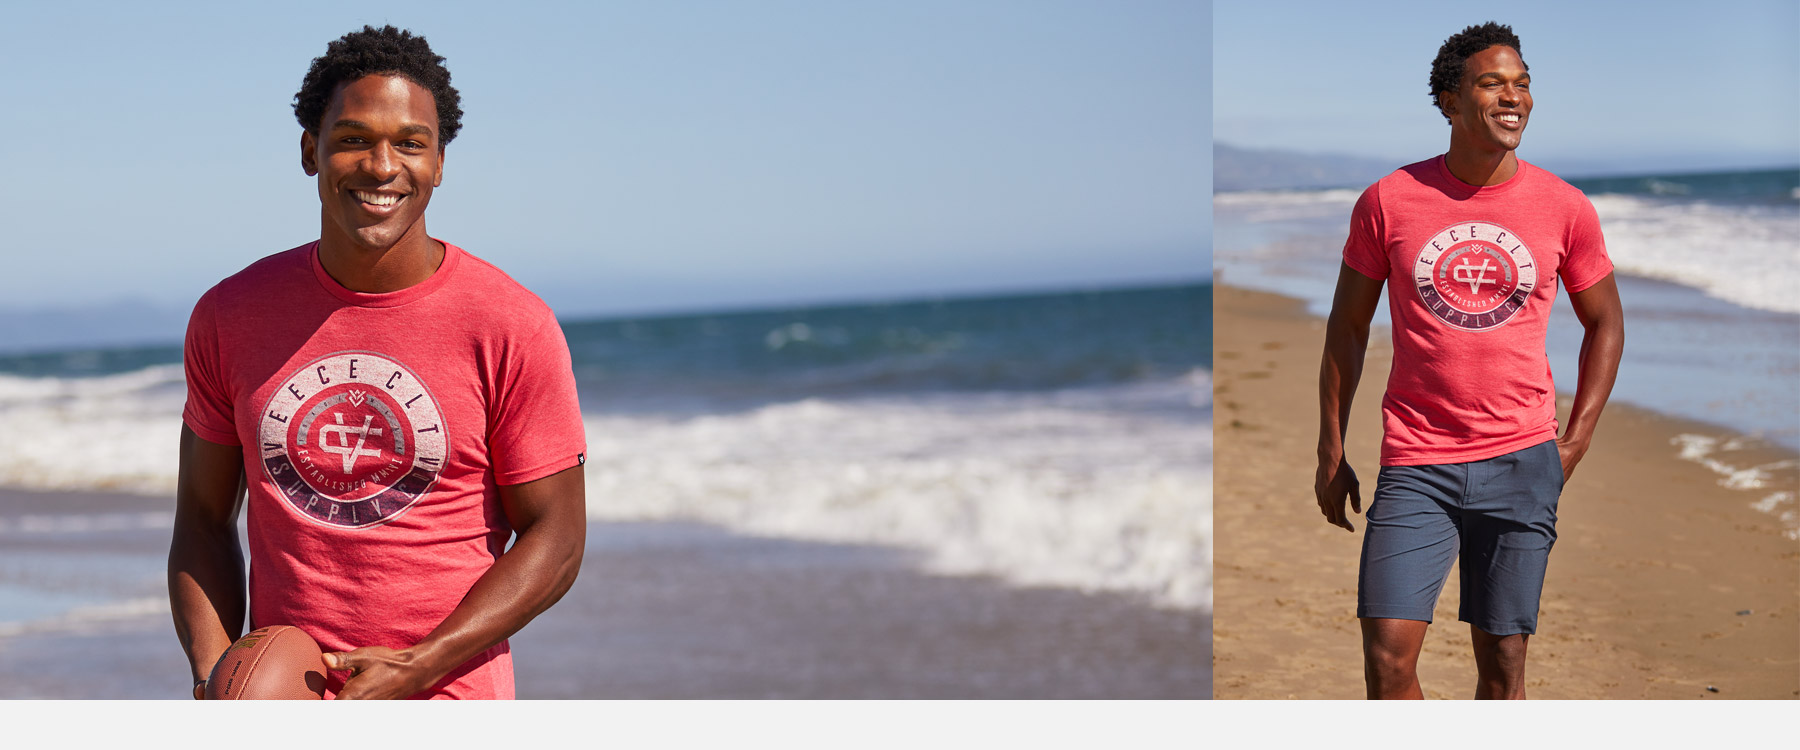 Guy wearing a red Veece graphic tee with a blue walkshort on the beach.